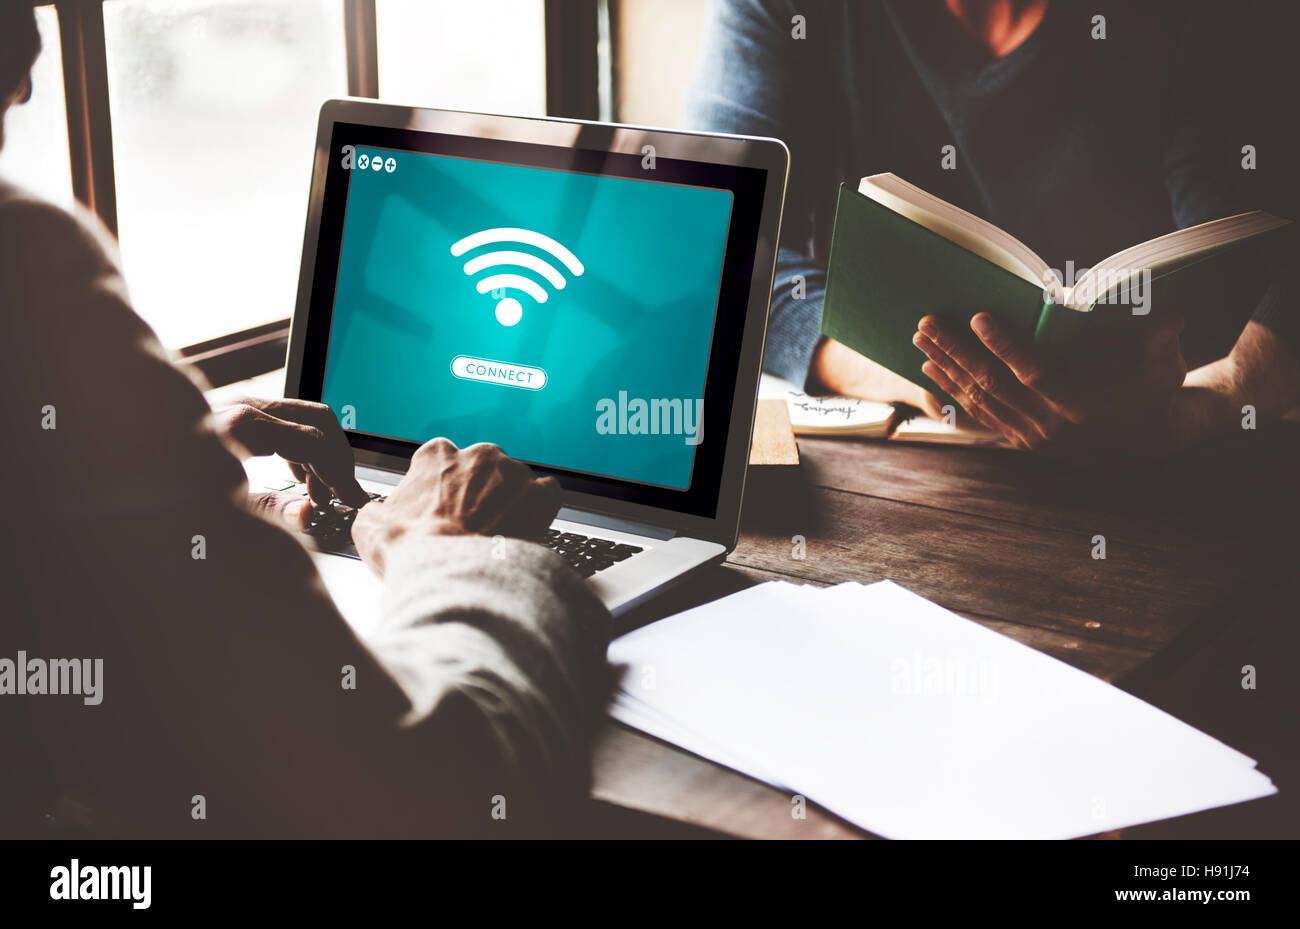 Wifi Network Connect Graphic Concept - Stock Image